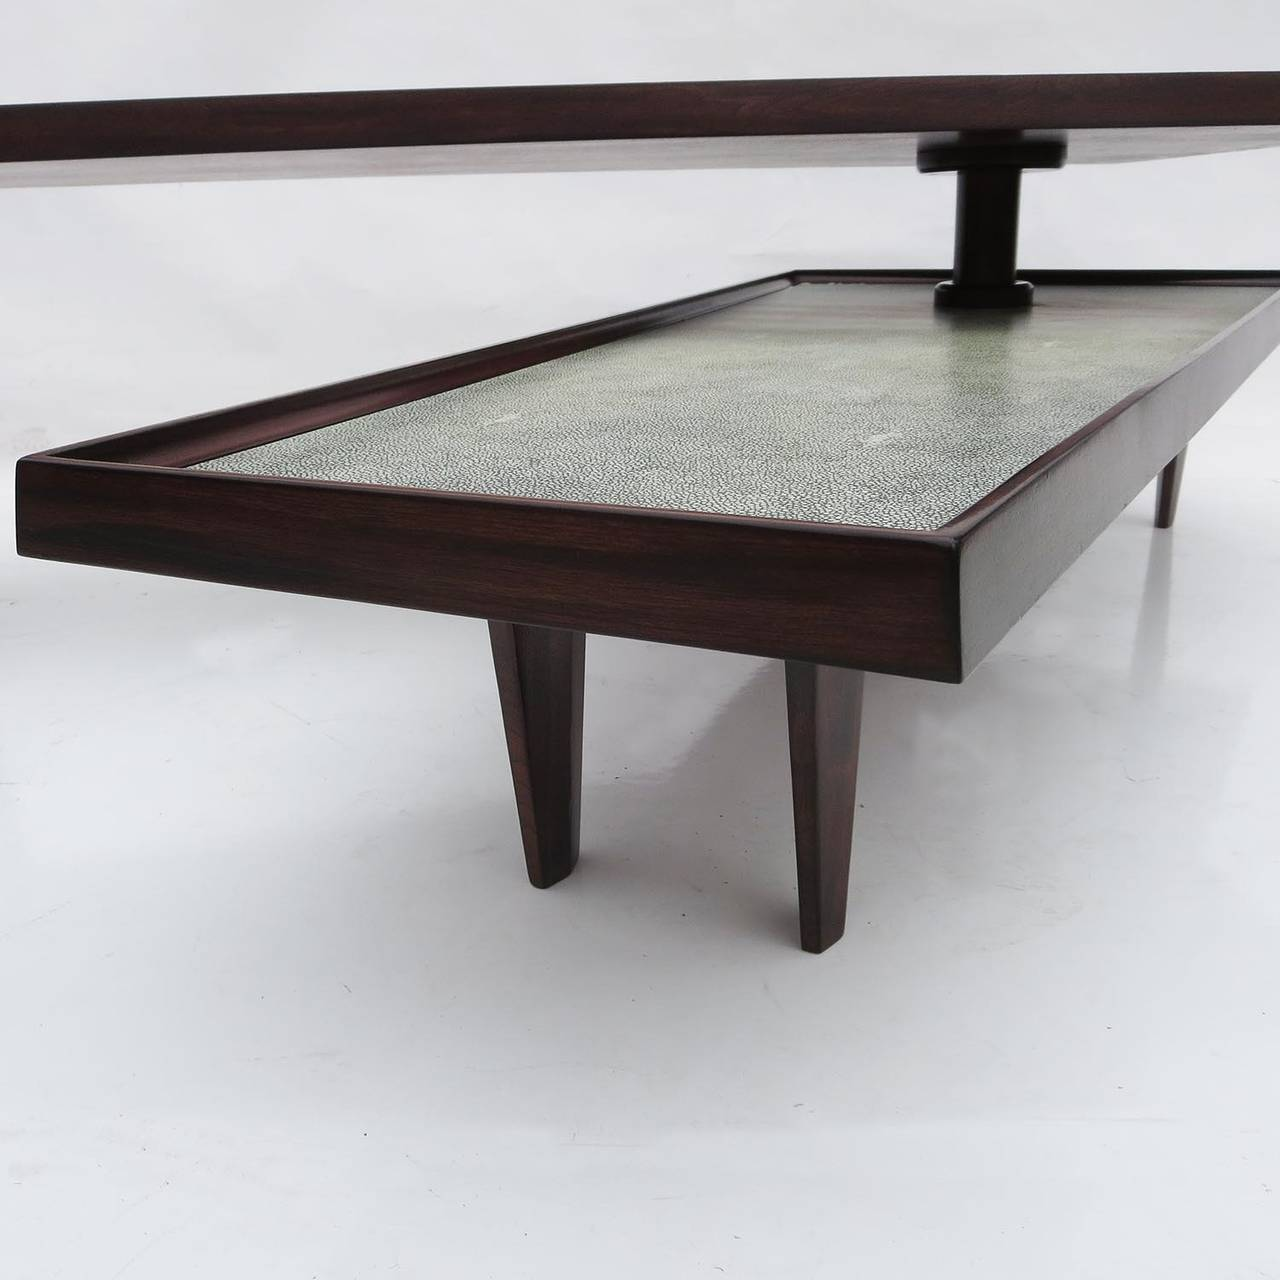 Modern coffee table with swing out level for sale at 1stdibs for Modern coffee table for sale